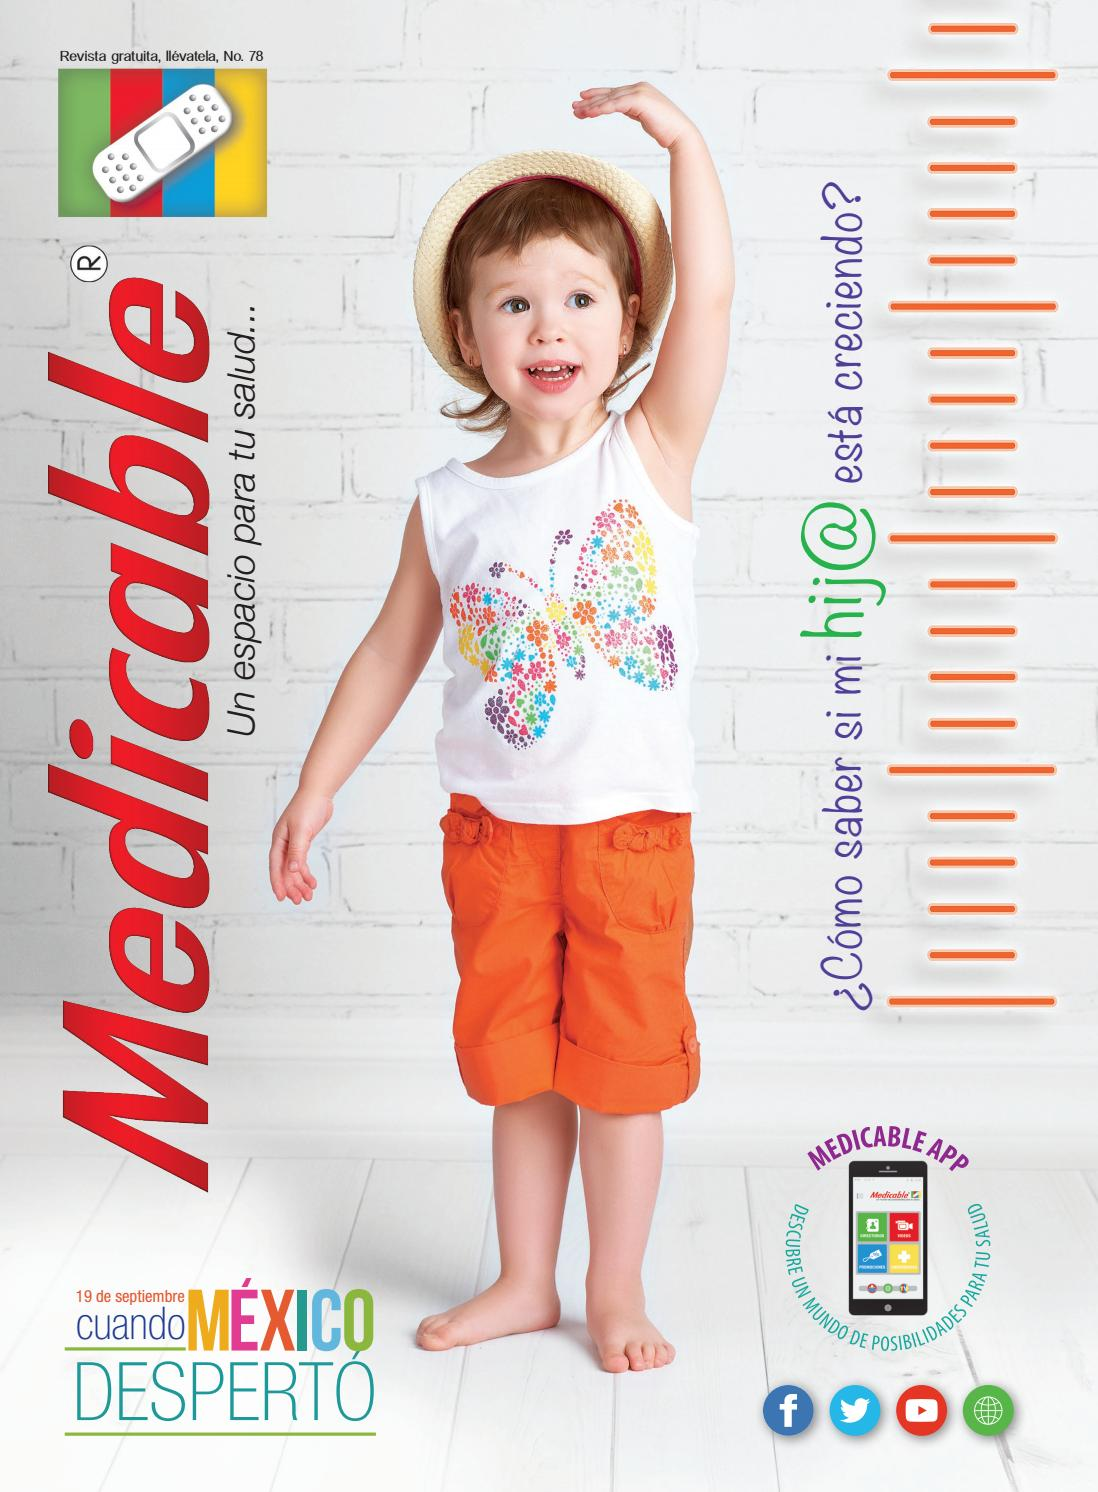 Medicable78 by Revista Medicable - issuu